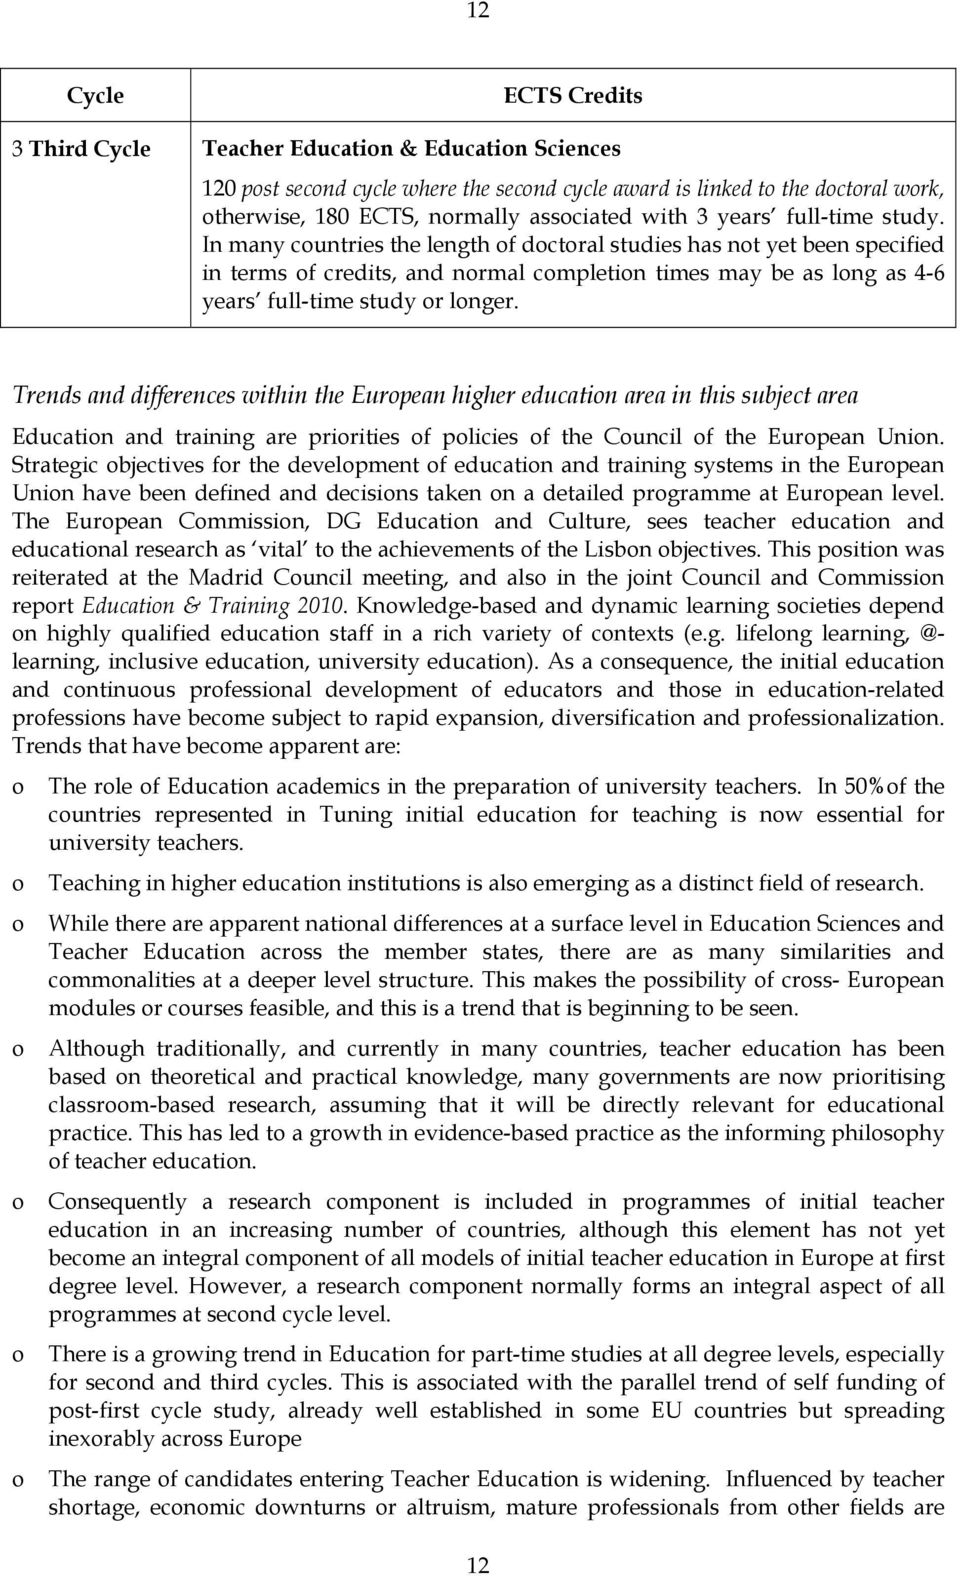 Trends and differences within the Eurpean higher educatin area in this subject area Educatin and training are pririties f plicies f the Cuncil f the Eurpean Unin.